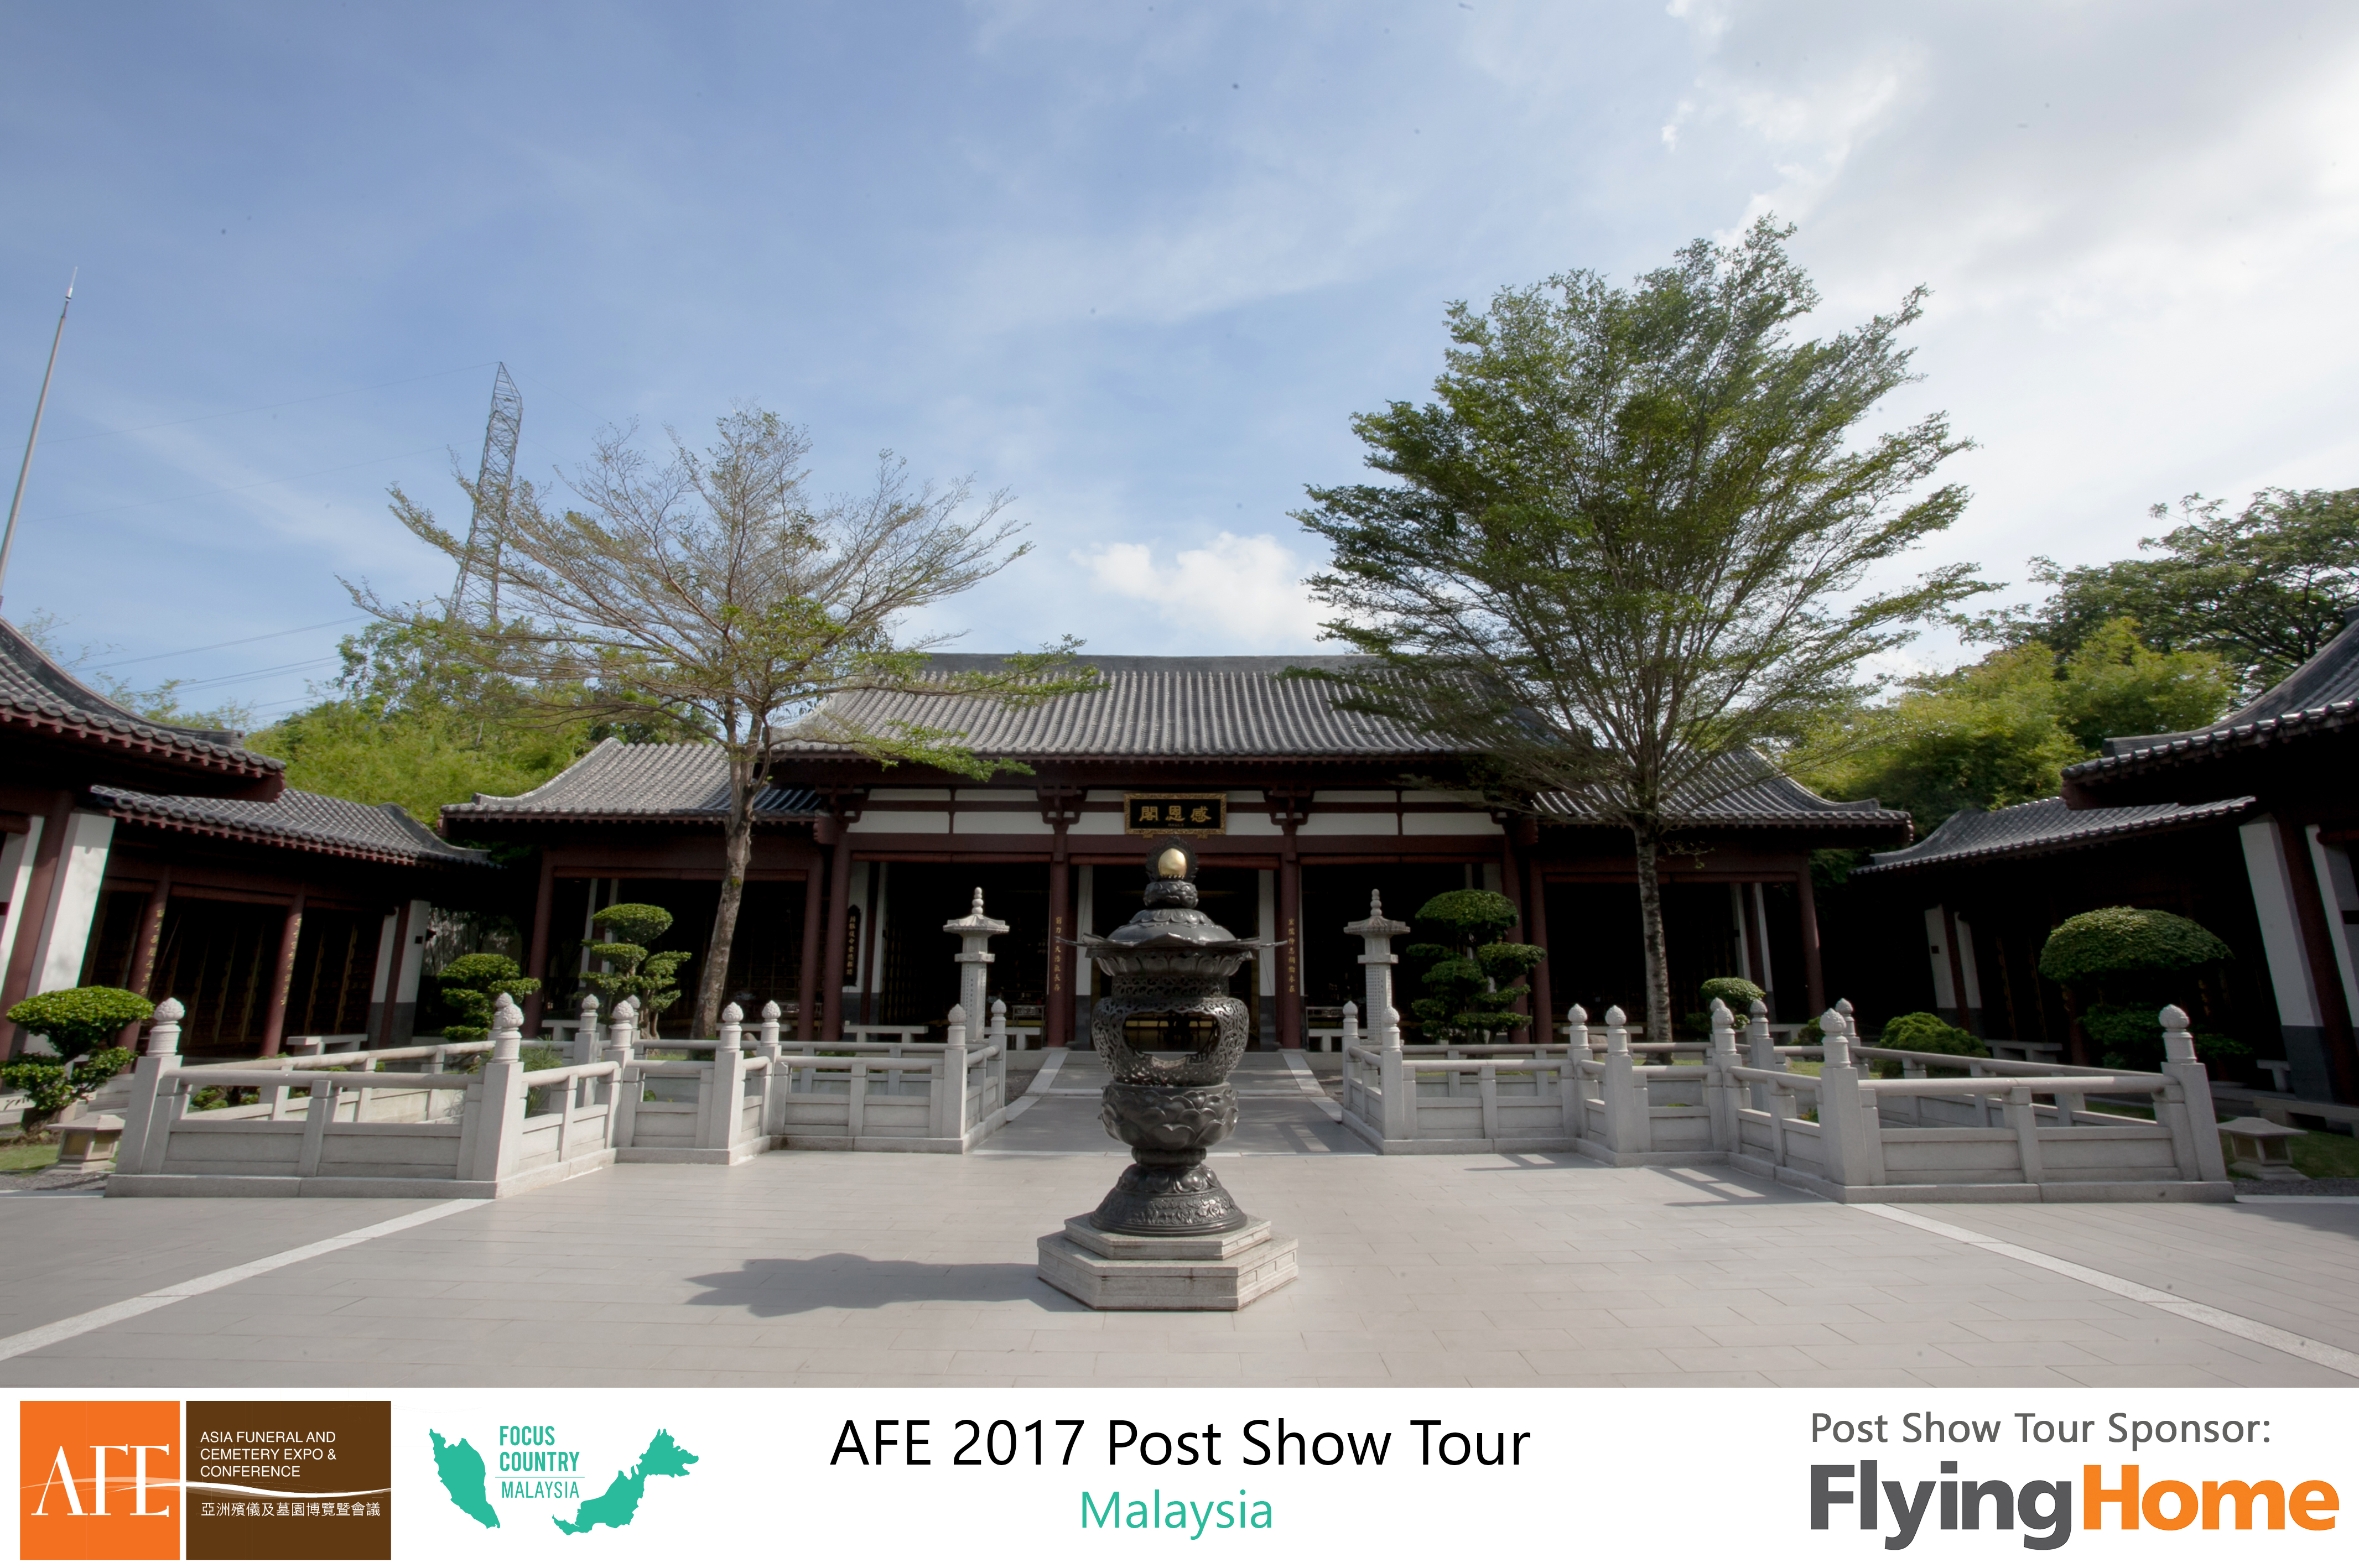 AFE Post Show Tour 2017 Day 2 - 72